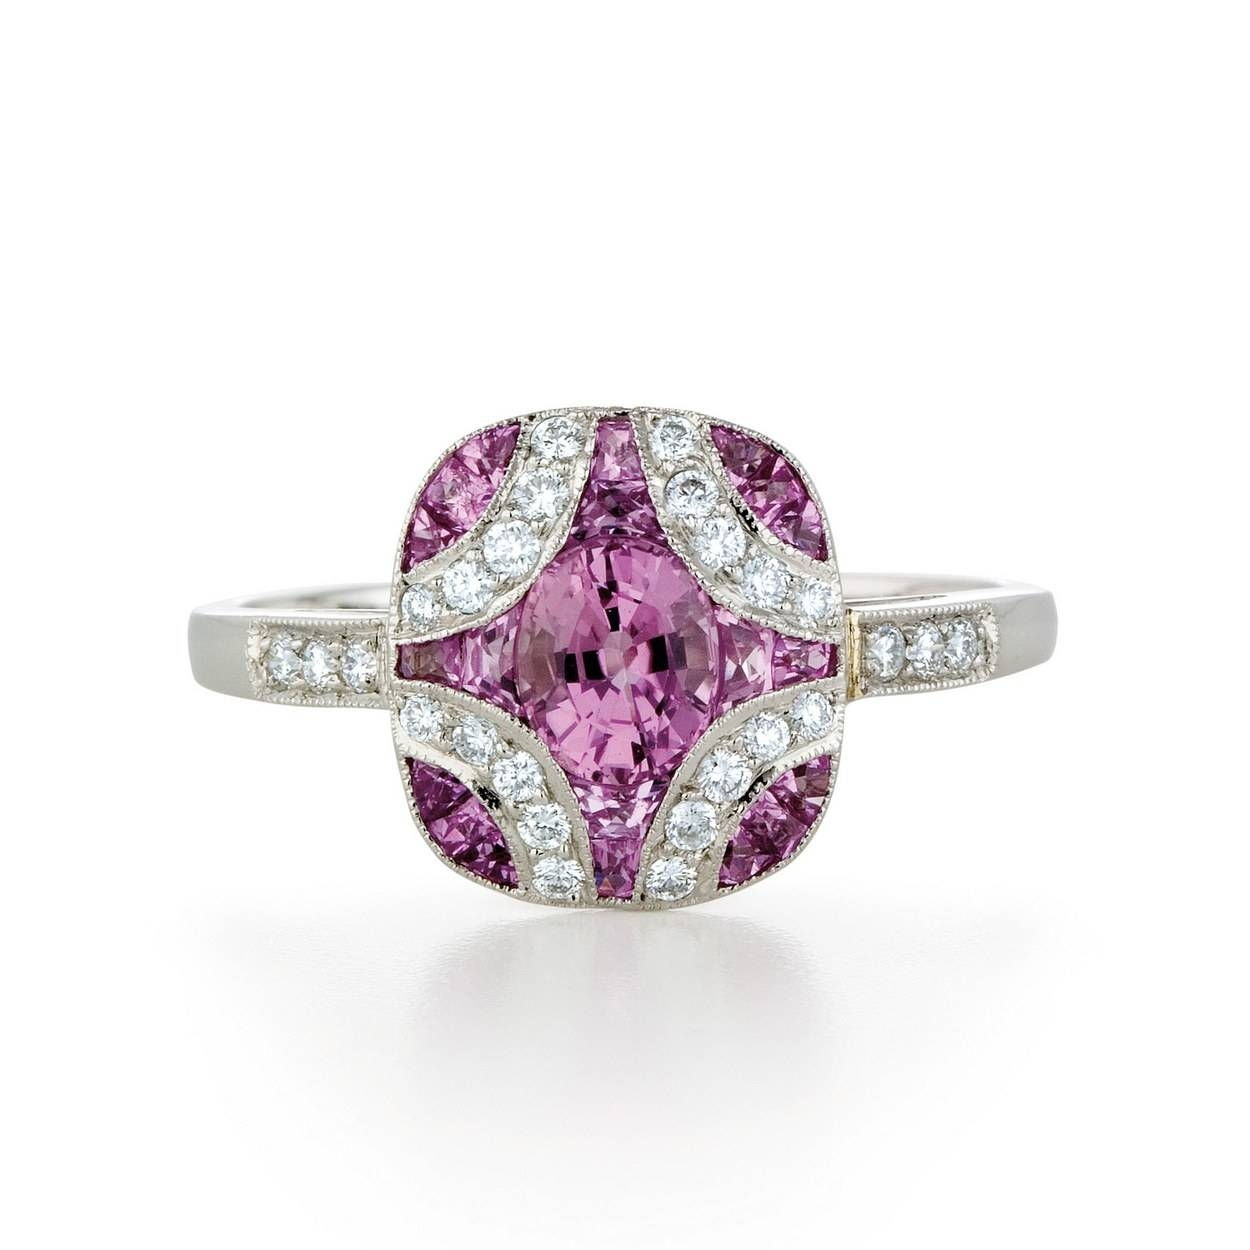 62 Diamond Engagement Rings Under $5,000 | Glamour With Regard To Pink Sapphire And Diamond Engagement Rings (View 1 of 15)